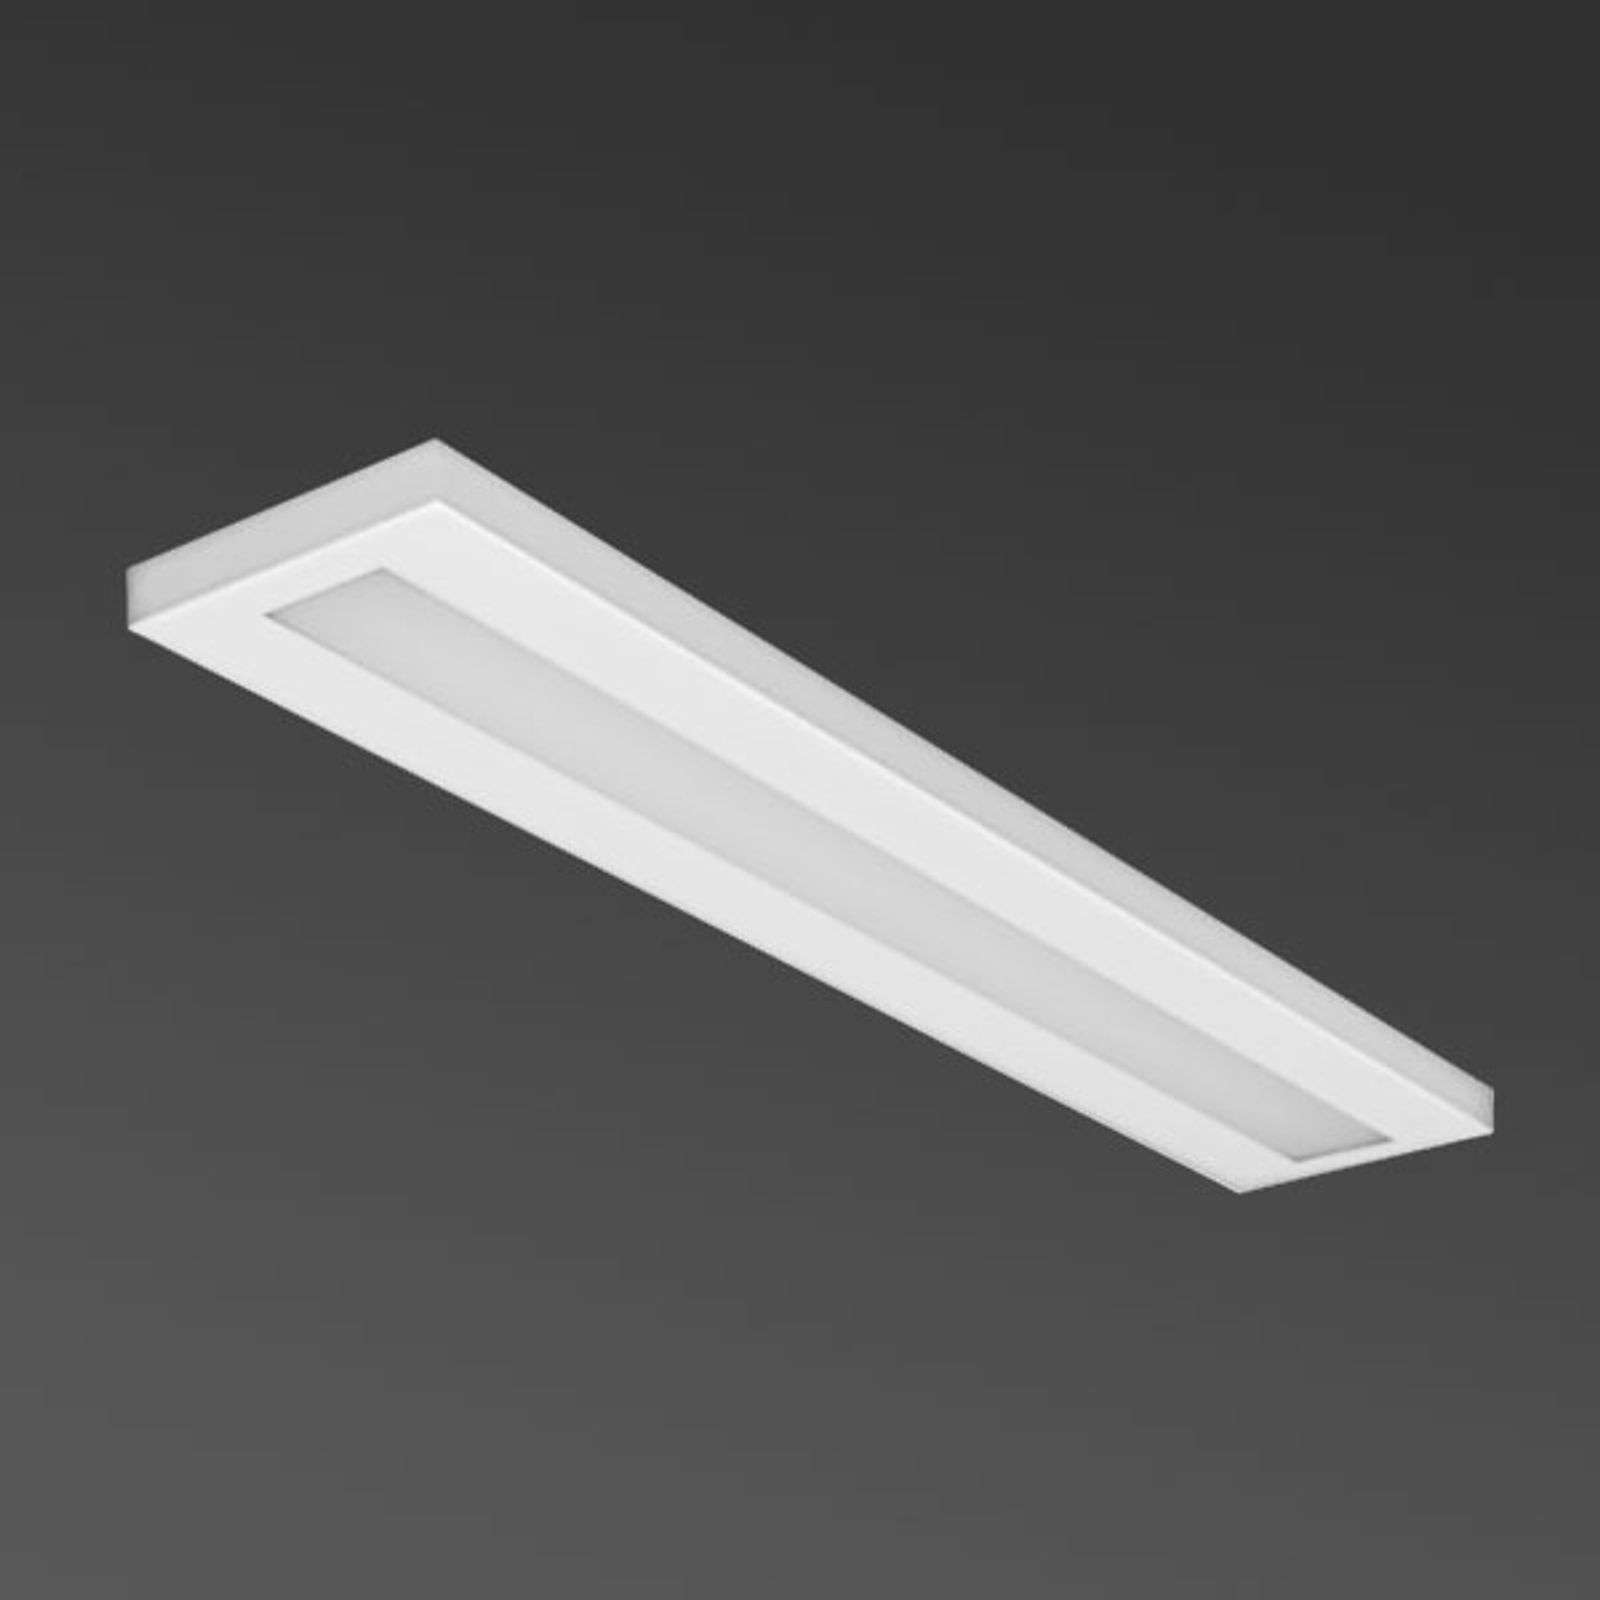 Applique LED en blanc, rectangulaire 48 W 3 000 K